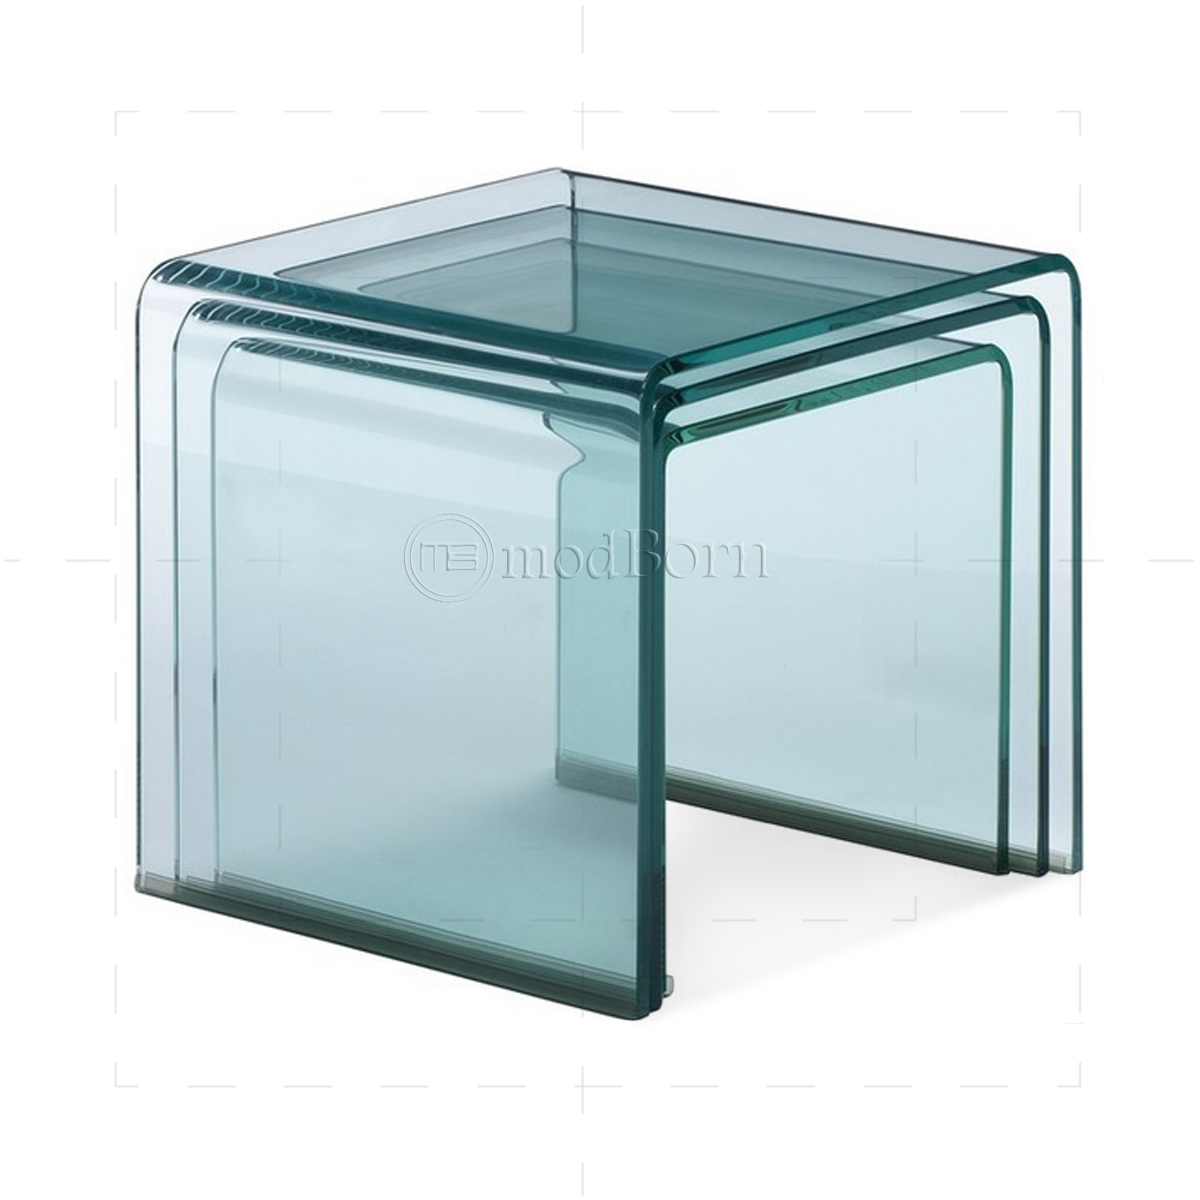 Toughened glass nest of coffee side tables clear